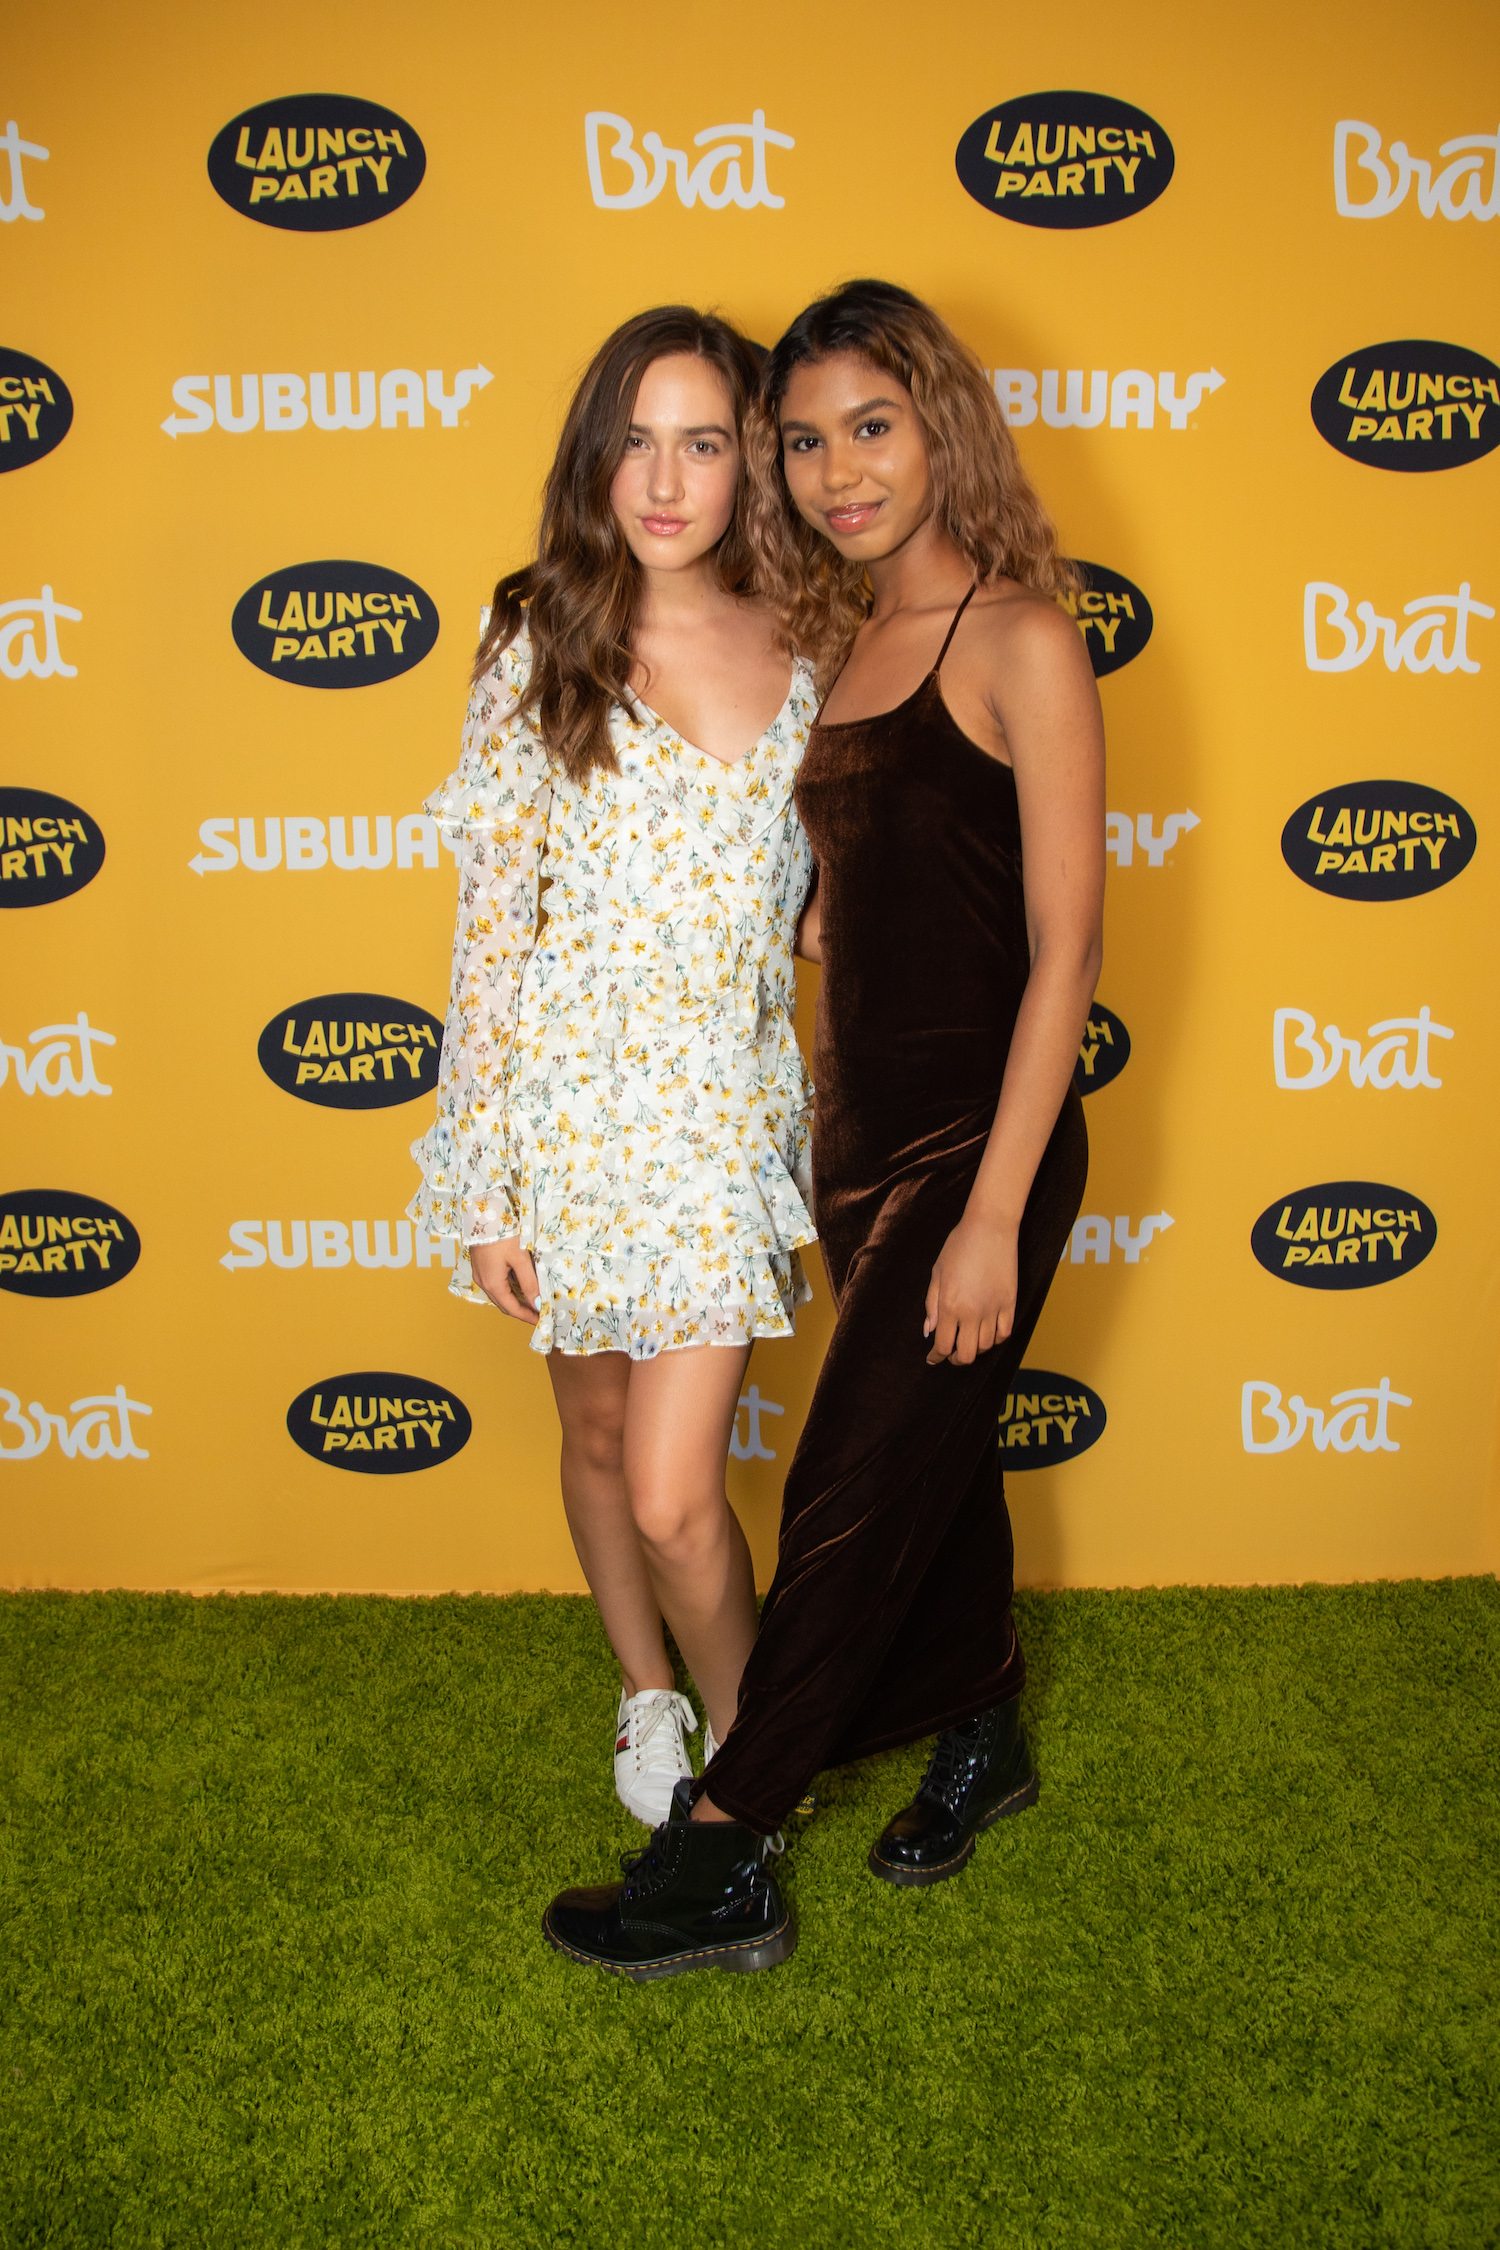 Fierce + Fabulous - Pilot Paisley-Rose and Aliyah Moulden shine in gorgeous statement dresses. Plus, we're loving Aliyah's combat boots!